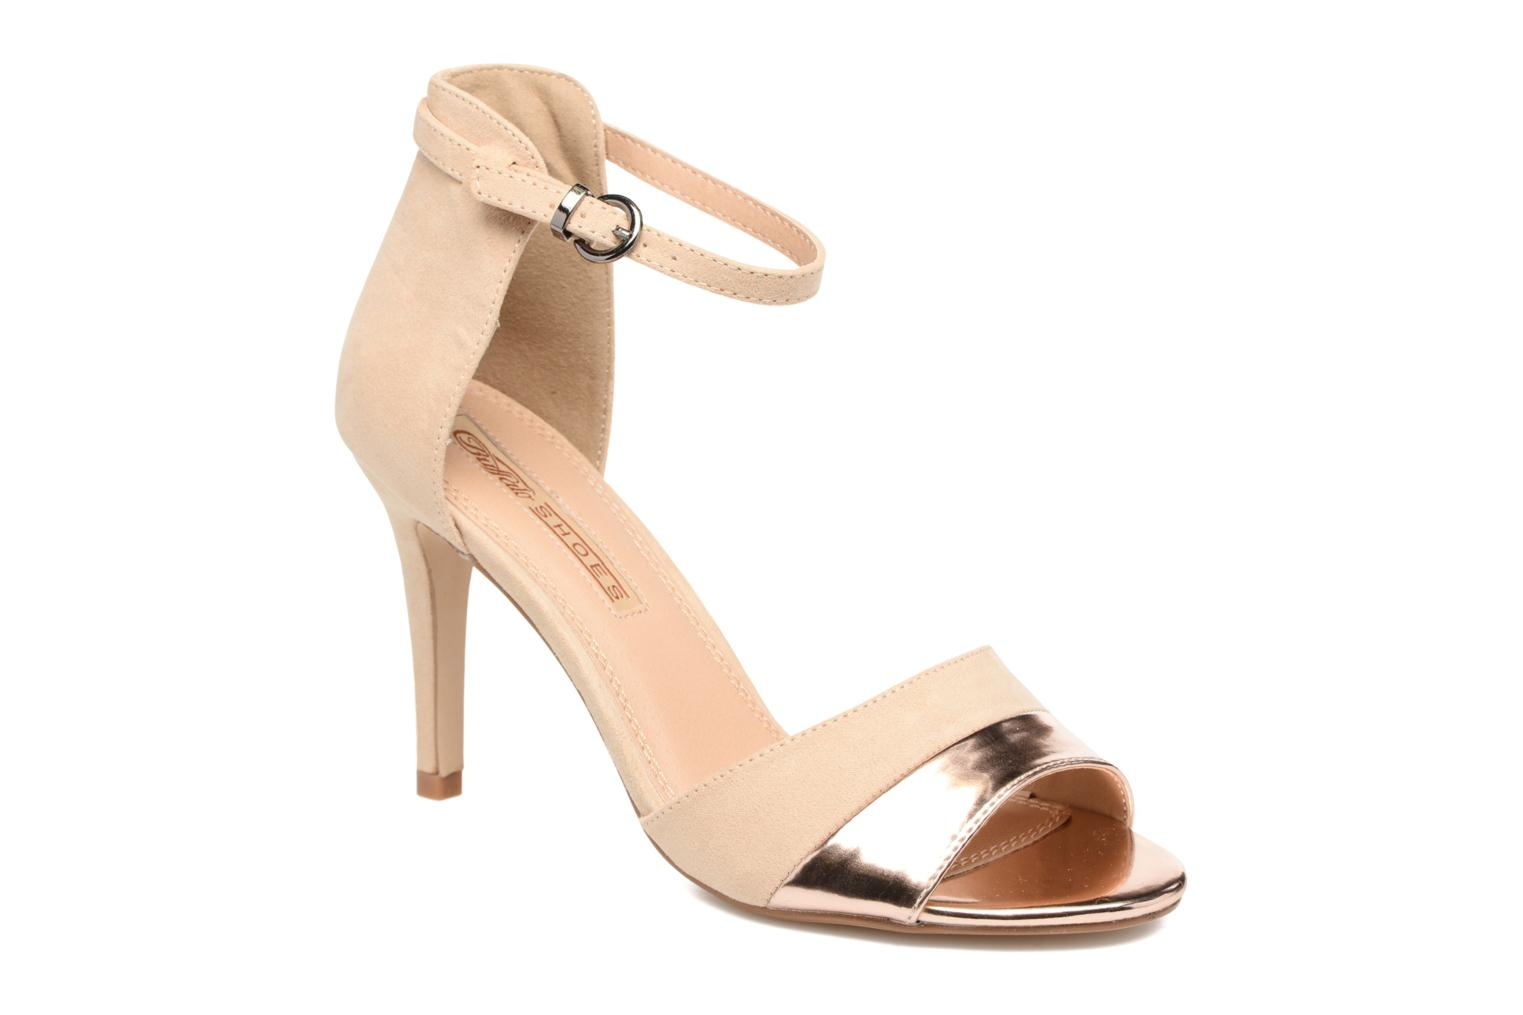 Marques Chaussure femme Buffalo femme Olivia champagne 01